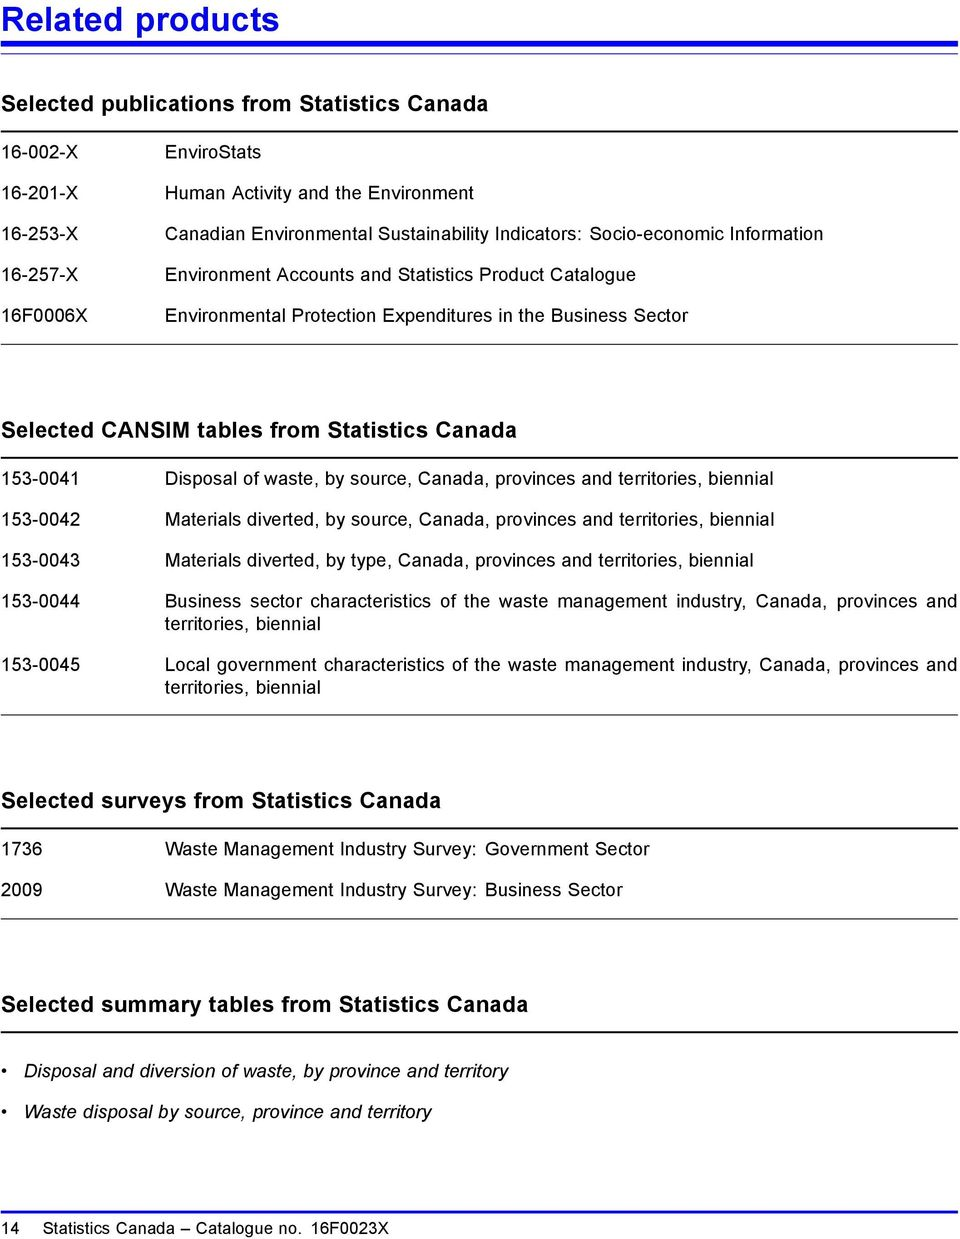 153-0041 Disposal of waste, by source, Canada, provinces and territories, biennial 153-0042 Materials diverted, by source, Canada, provinces and territories, biennial 153-0043 Materials diverted, by